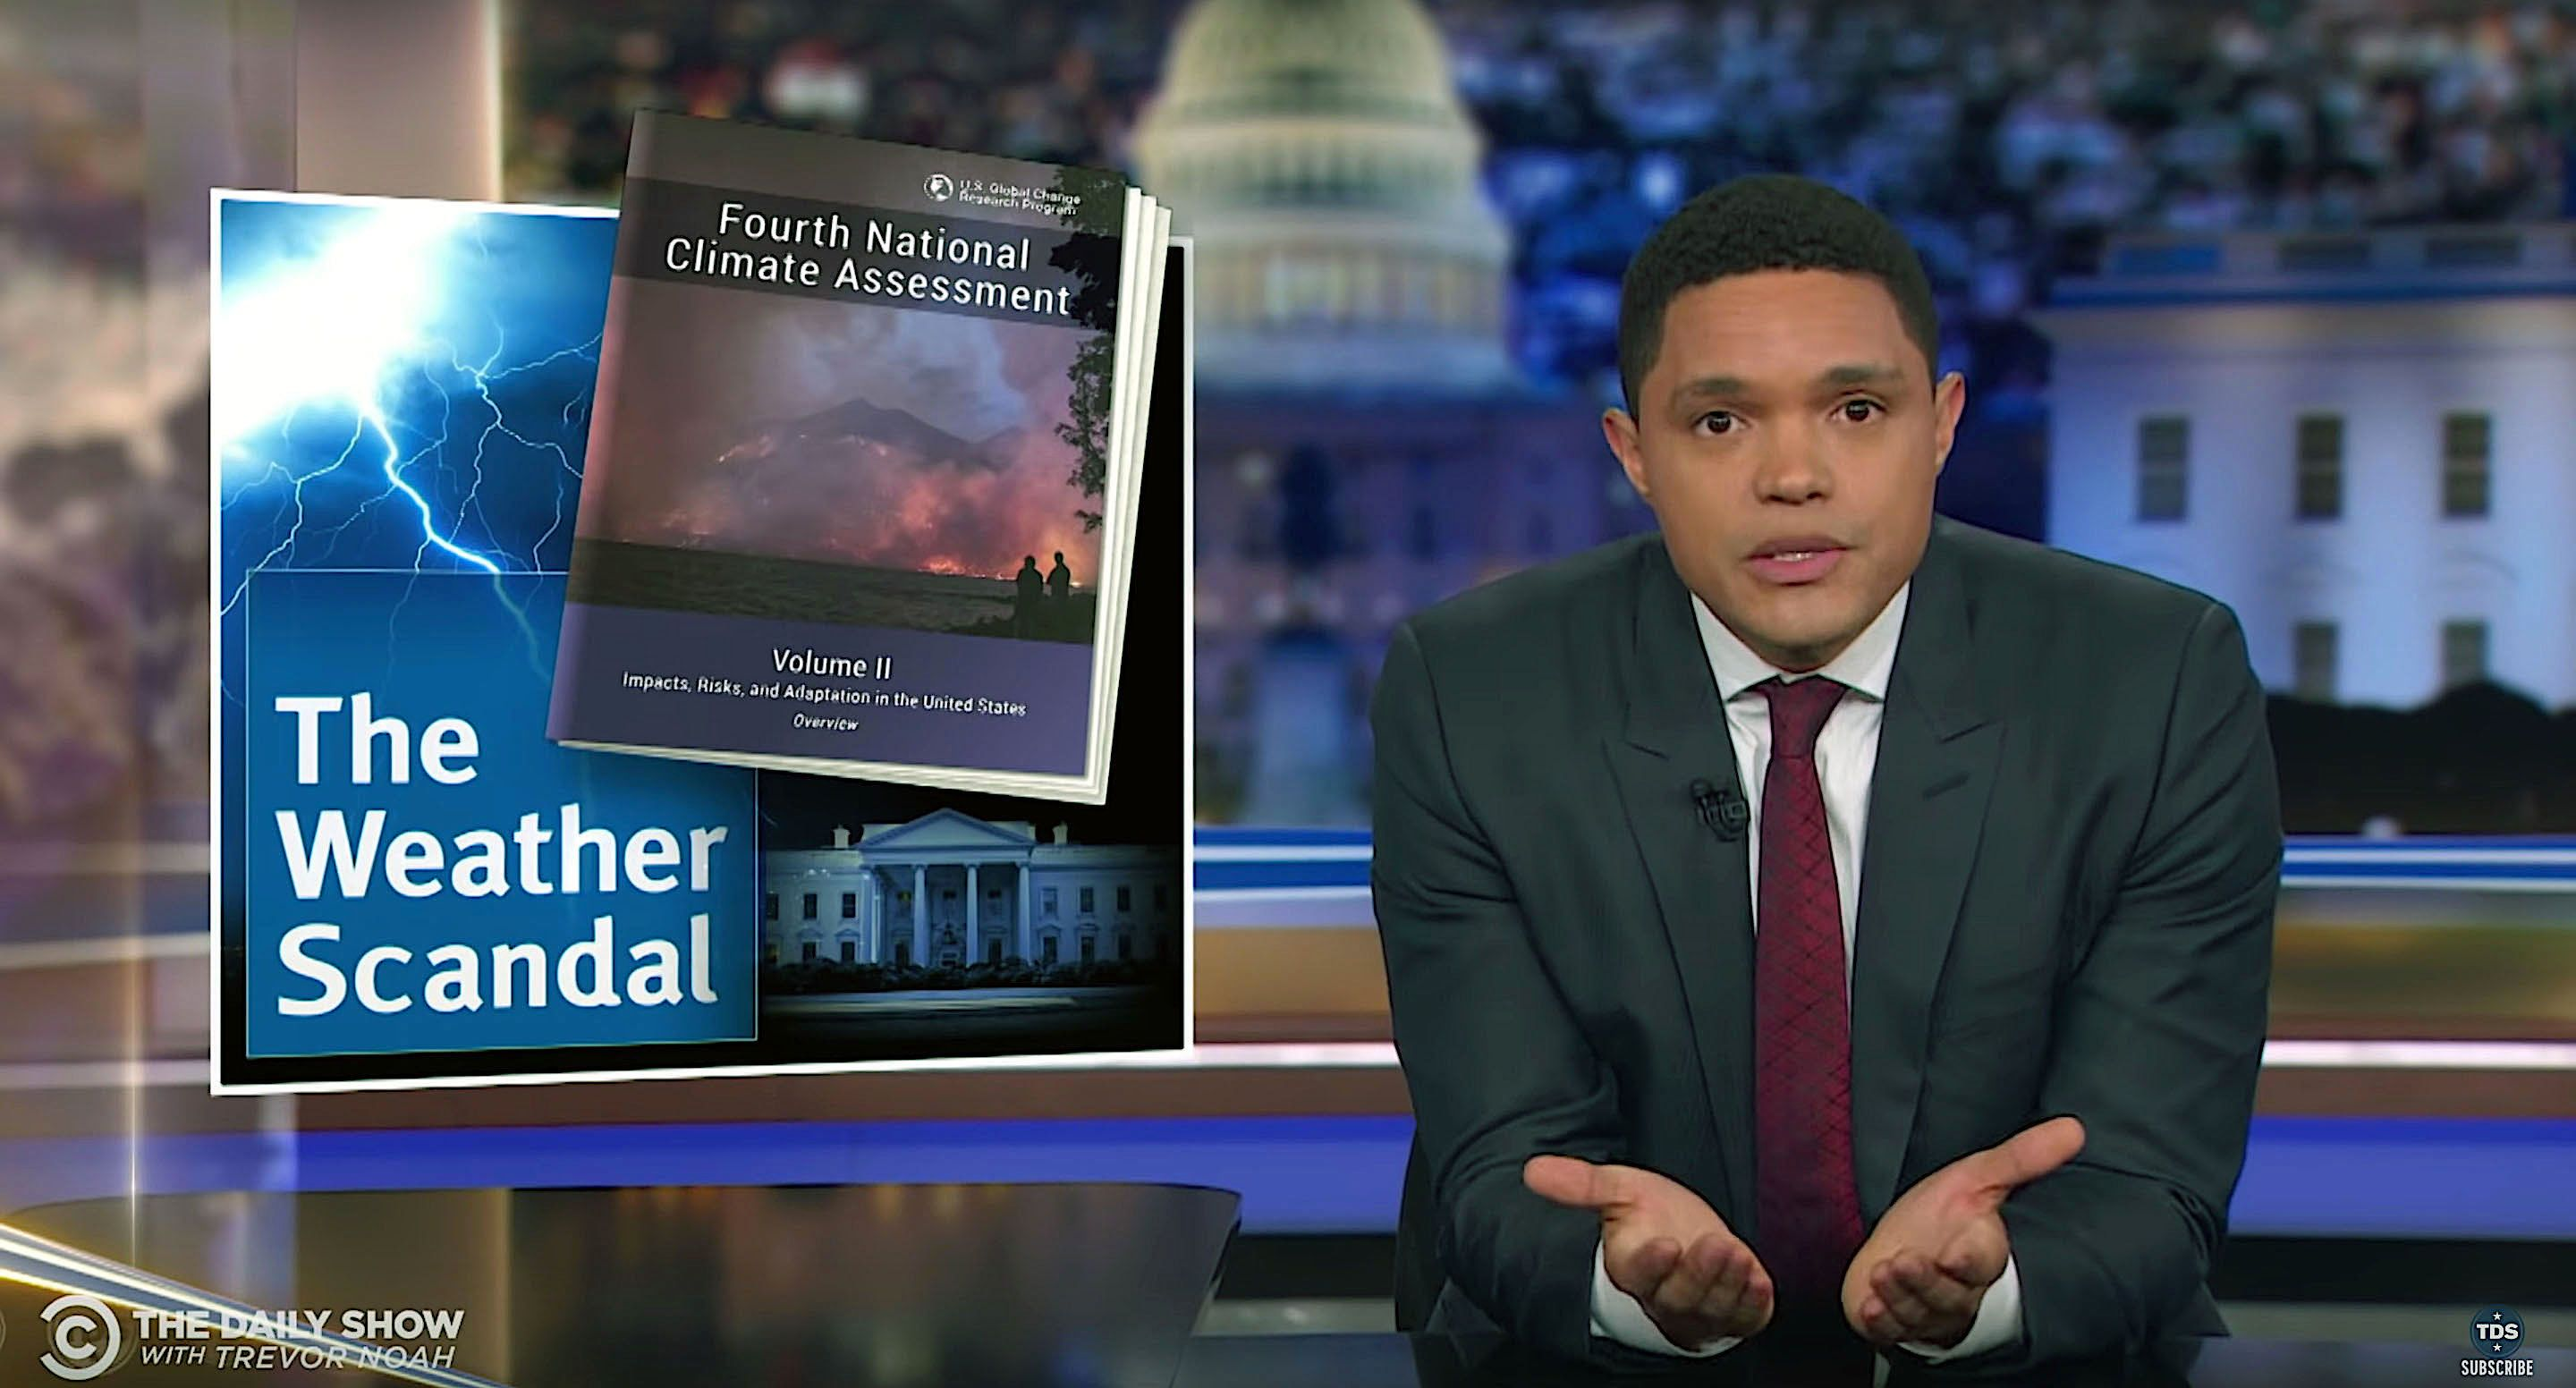 Trevor Noah discusses President Donald Trump's reaction to the federal government's climate report.